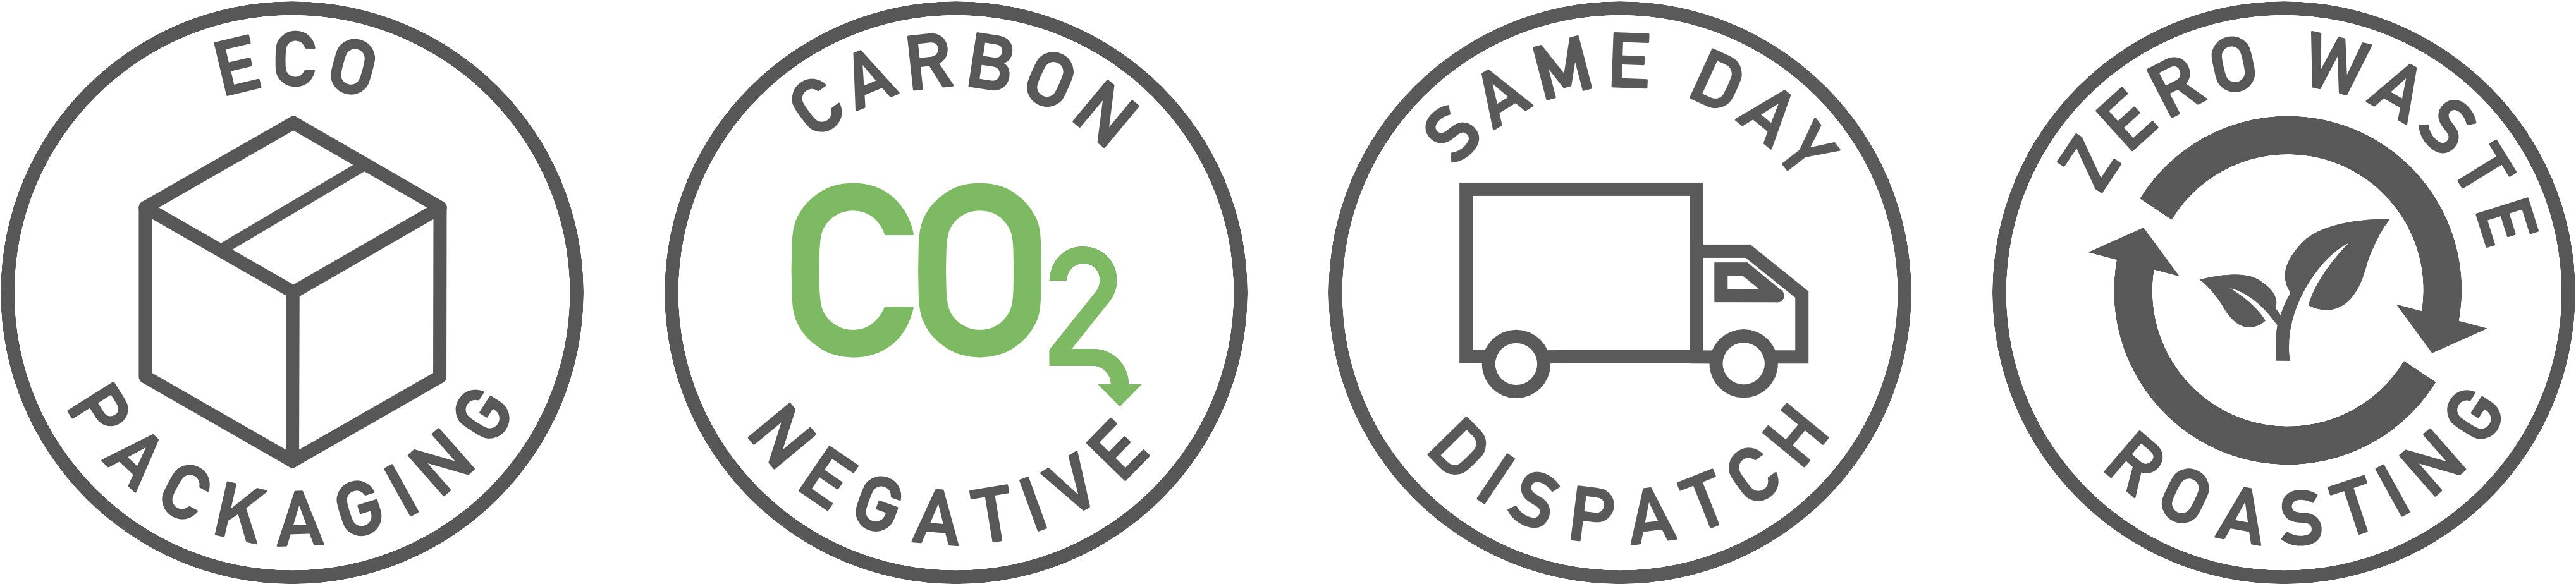 Image showing 4 badges for carbon negative, eco packaging, zero waste roasting and same day dispatch